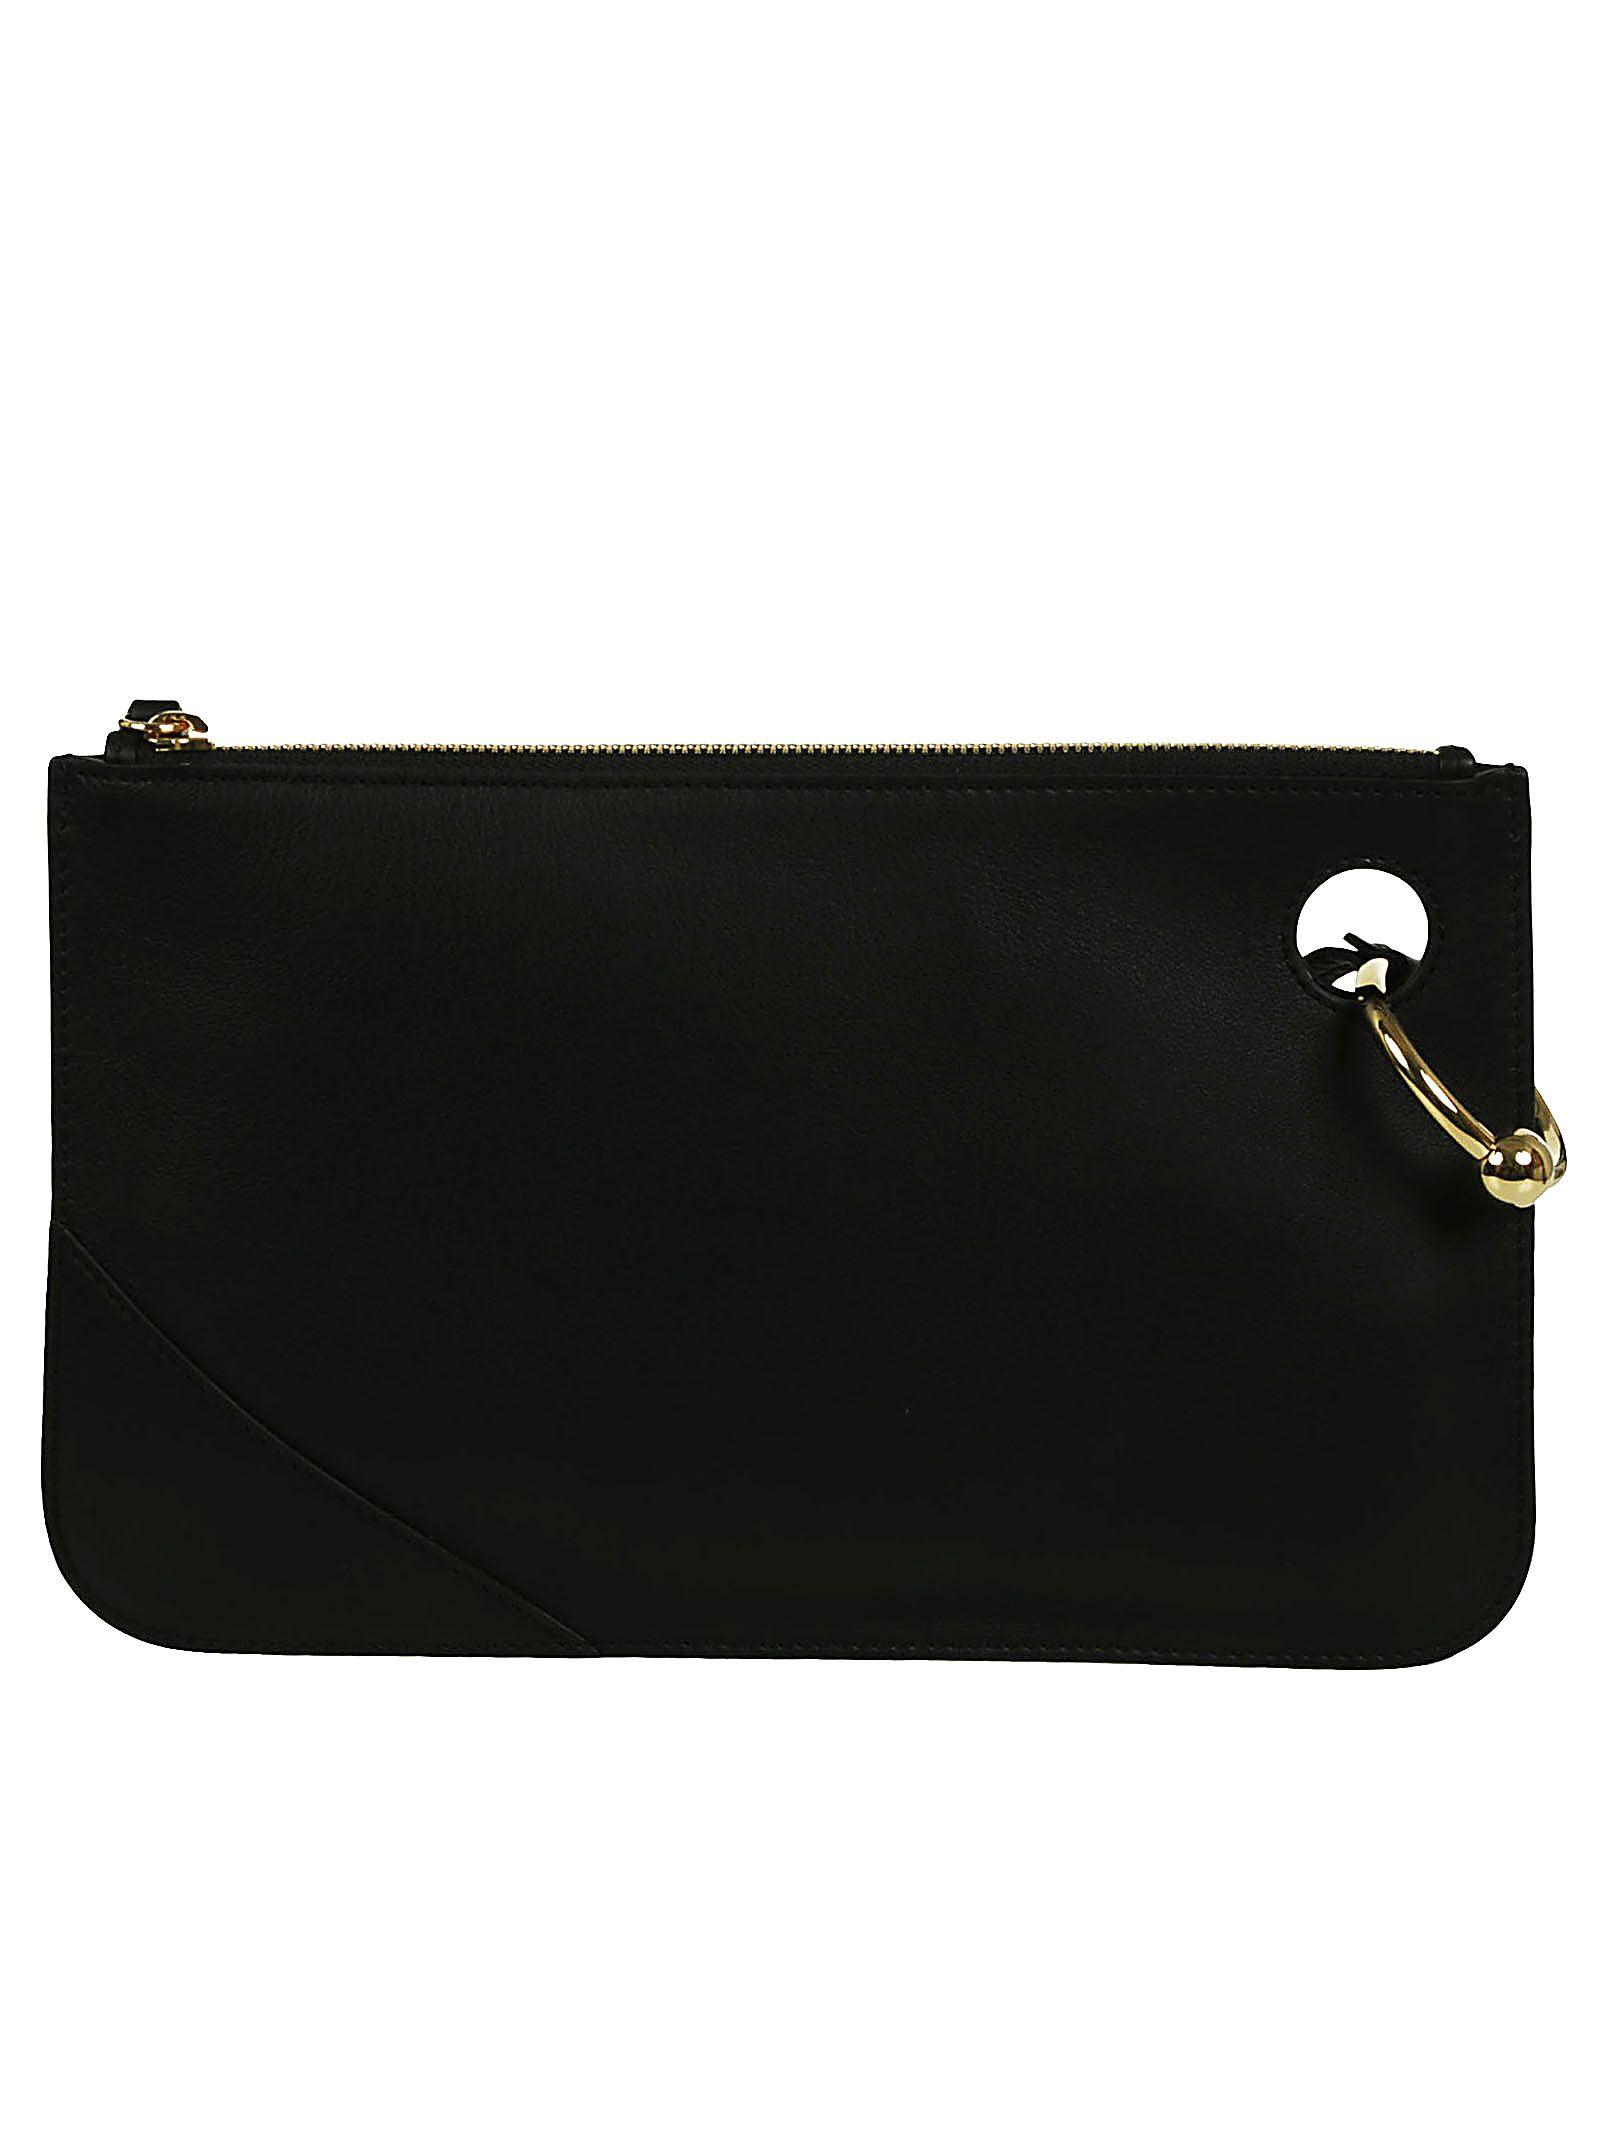 Jw Anderson J.W. Anderson J.W. Anderson Pierce Clutch In Black